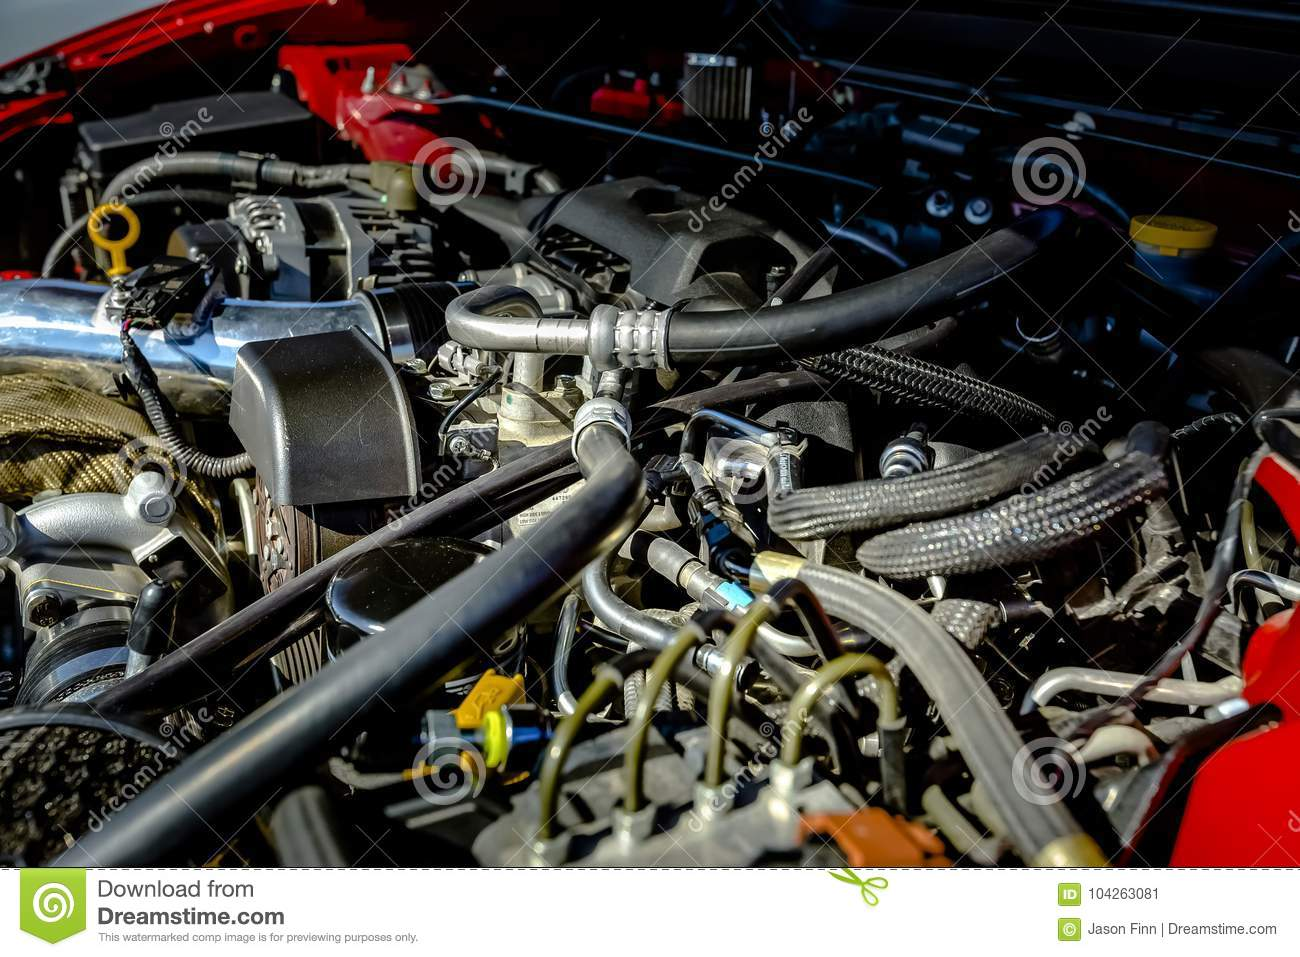 Powerful Engine Under The Hood Of A Modern Car Stock Image - Image ...